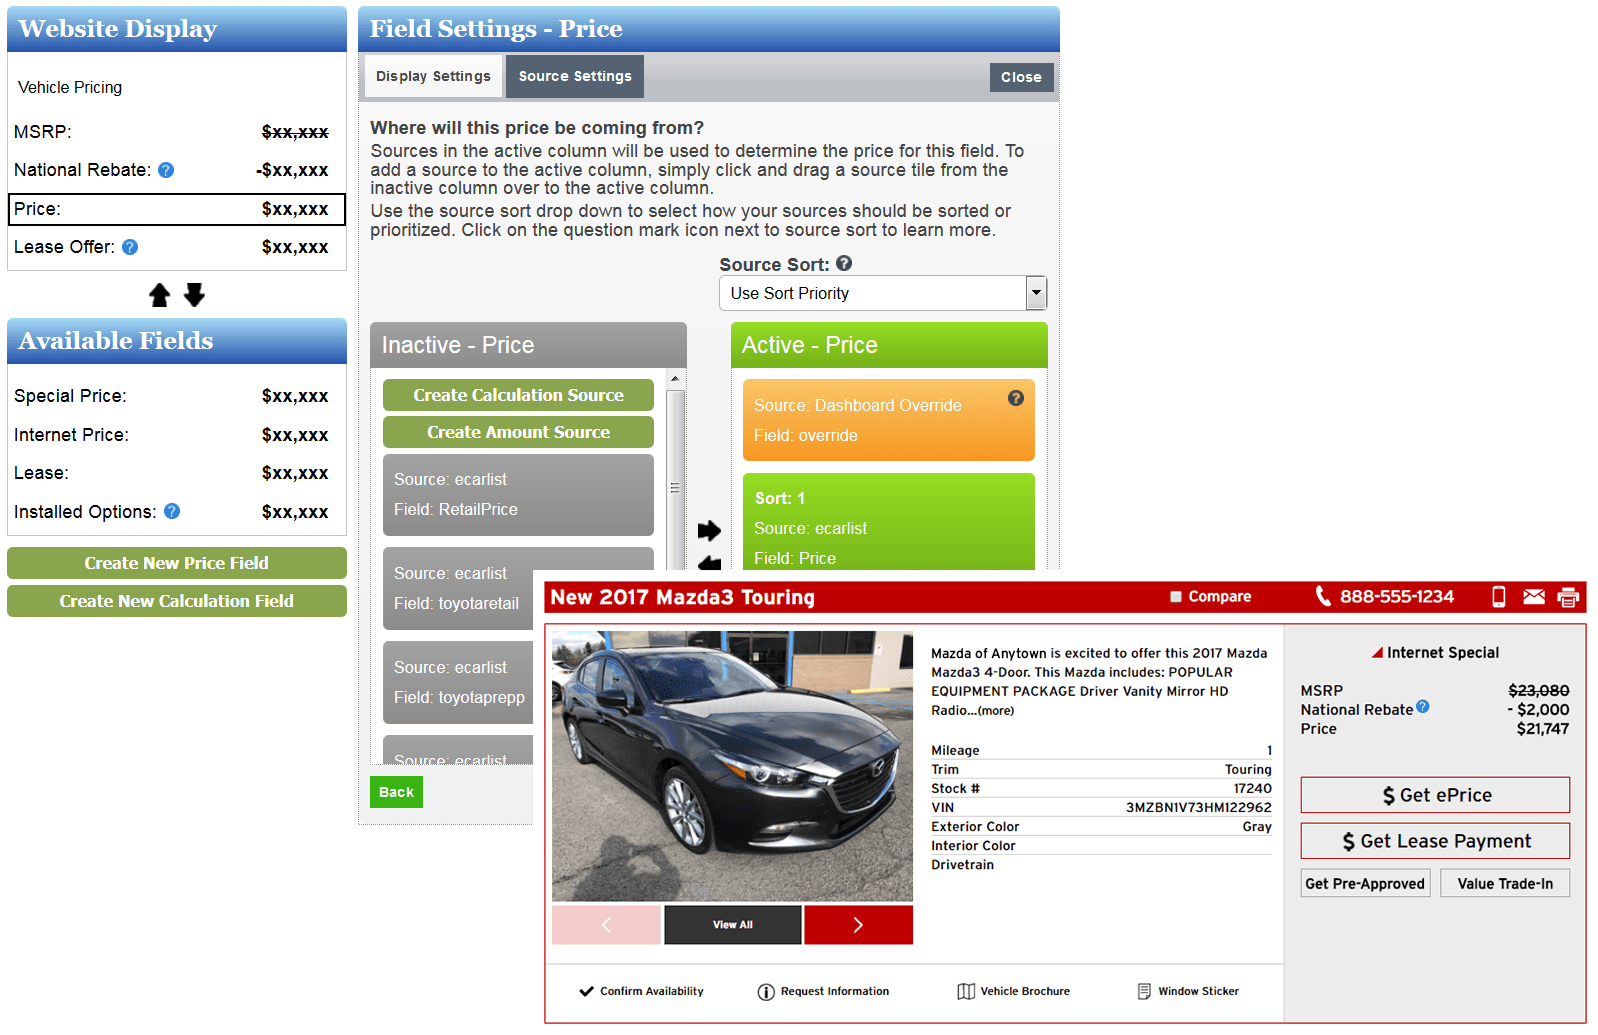 Mazda Pricing Manger screen